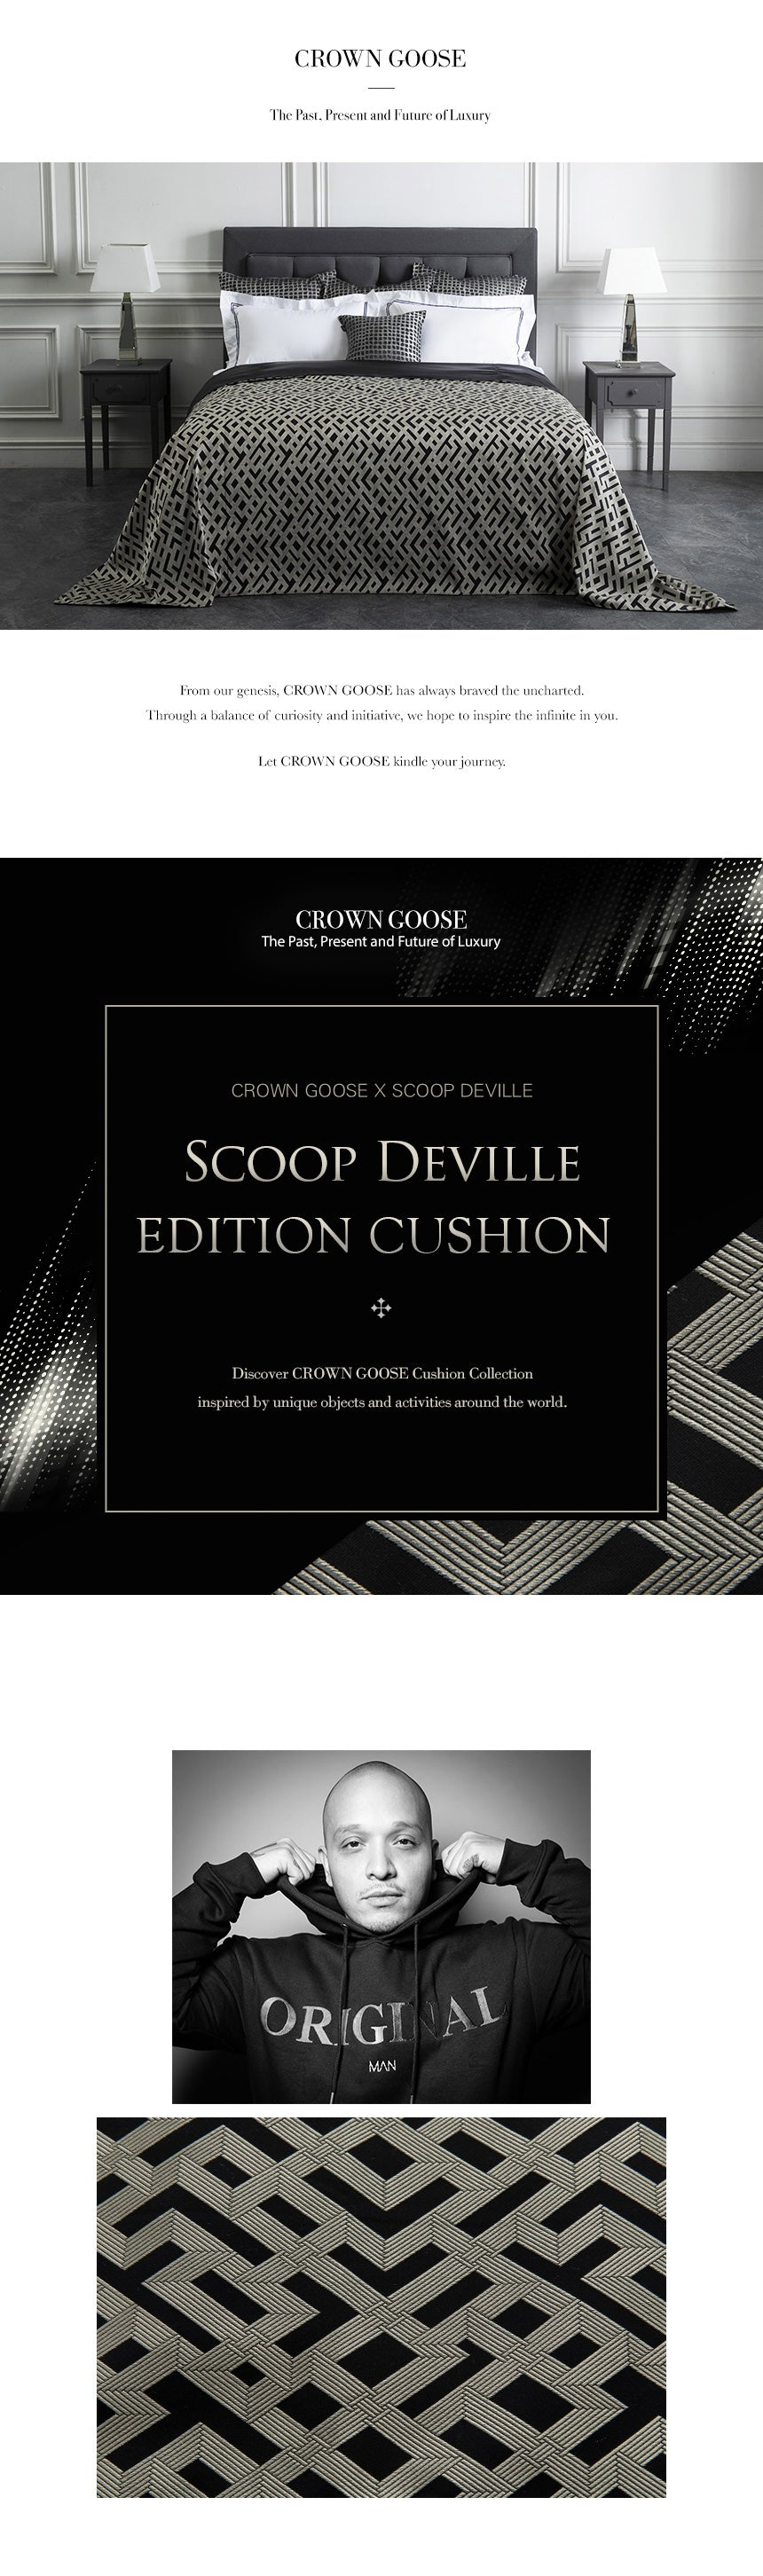 scoop deville cushion